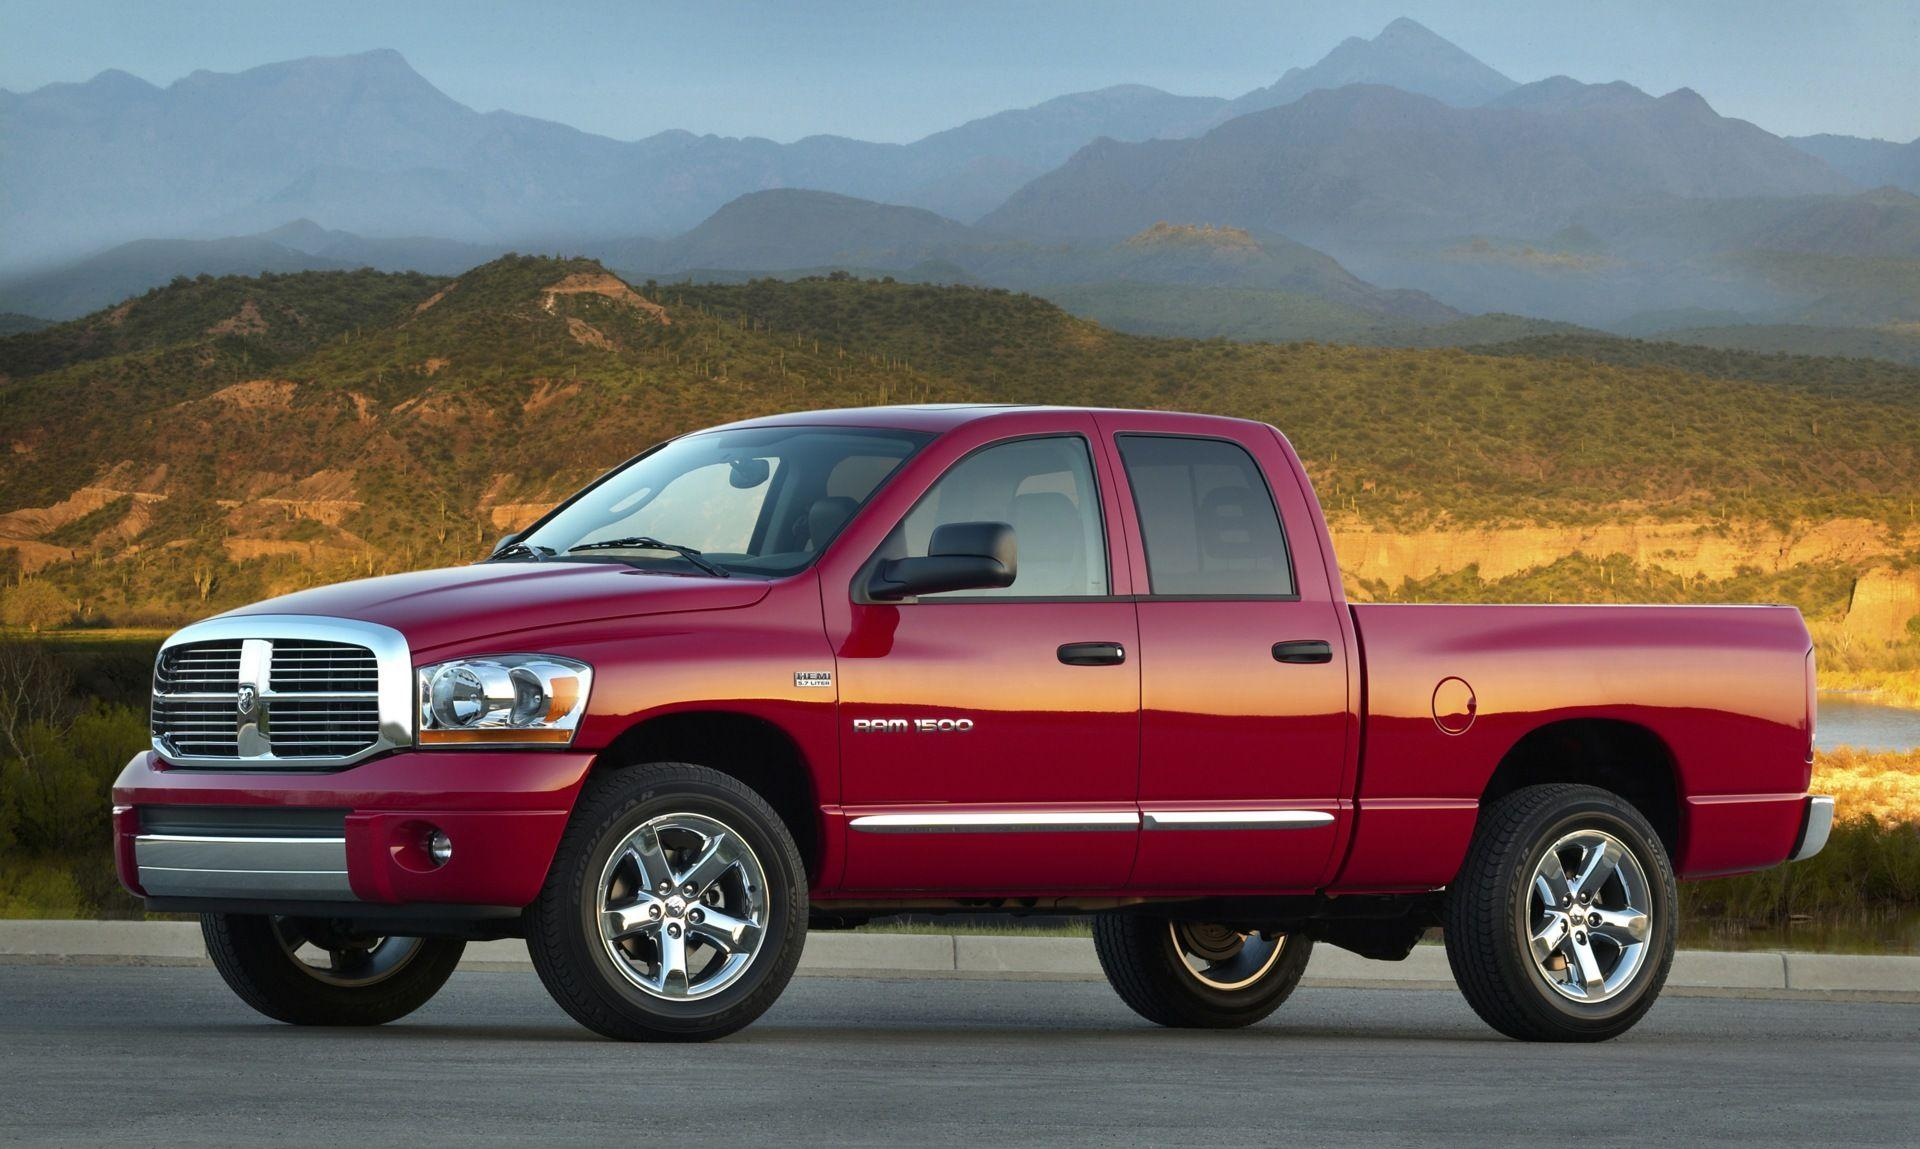 Cars Backgrounds, 402671 Dodge Ram 1500 Wallpapers, by Dino Hristopoulos